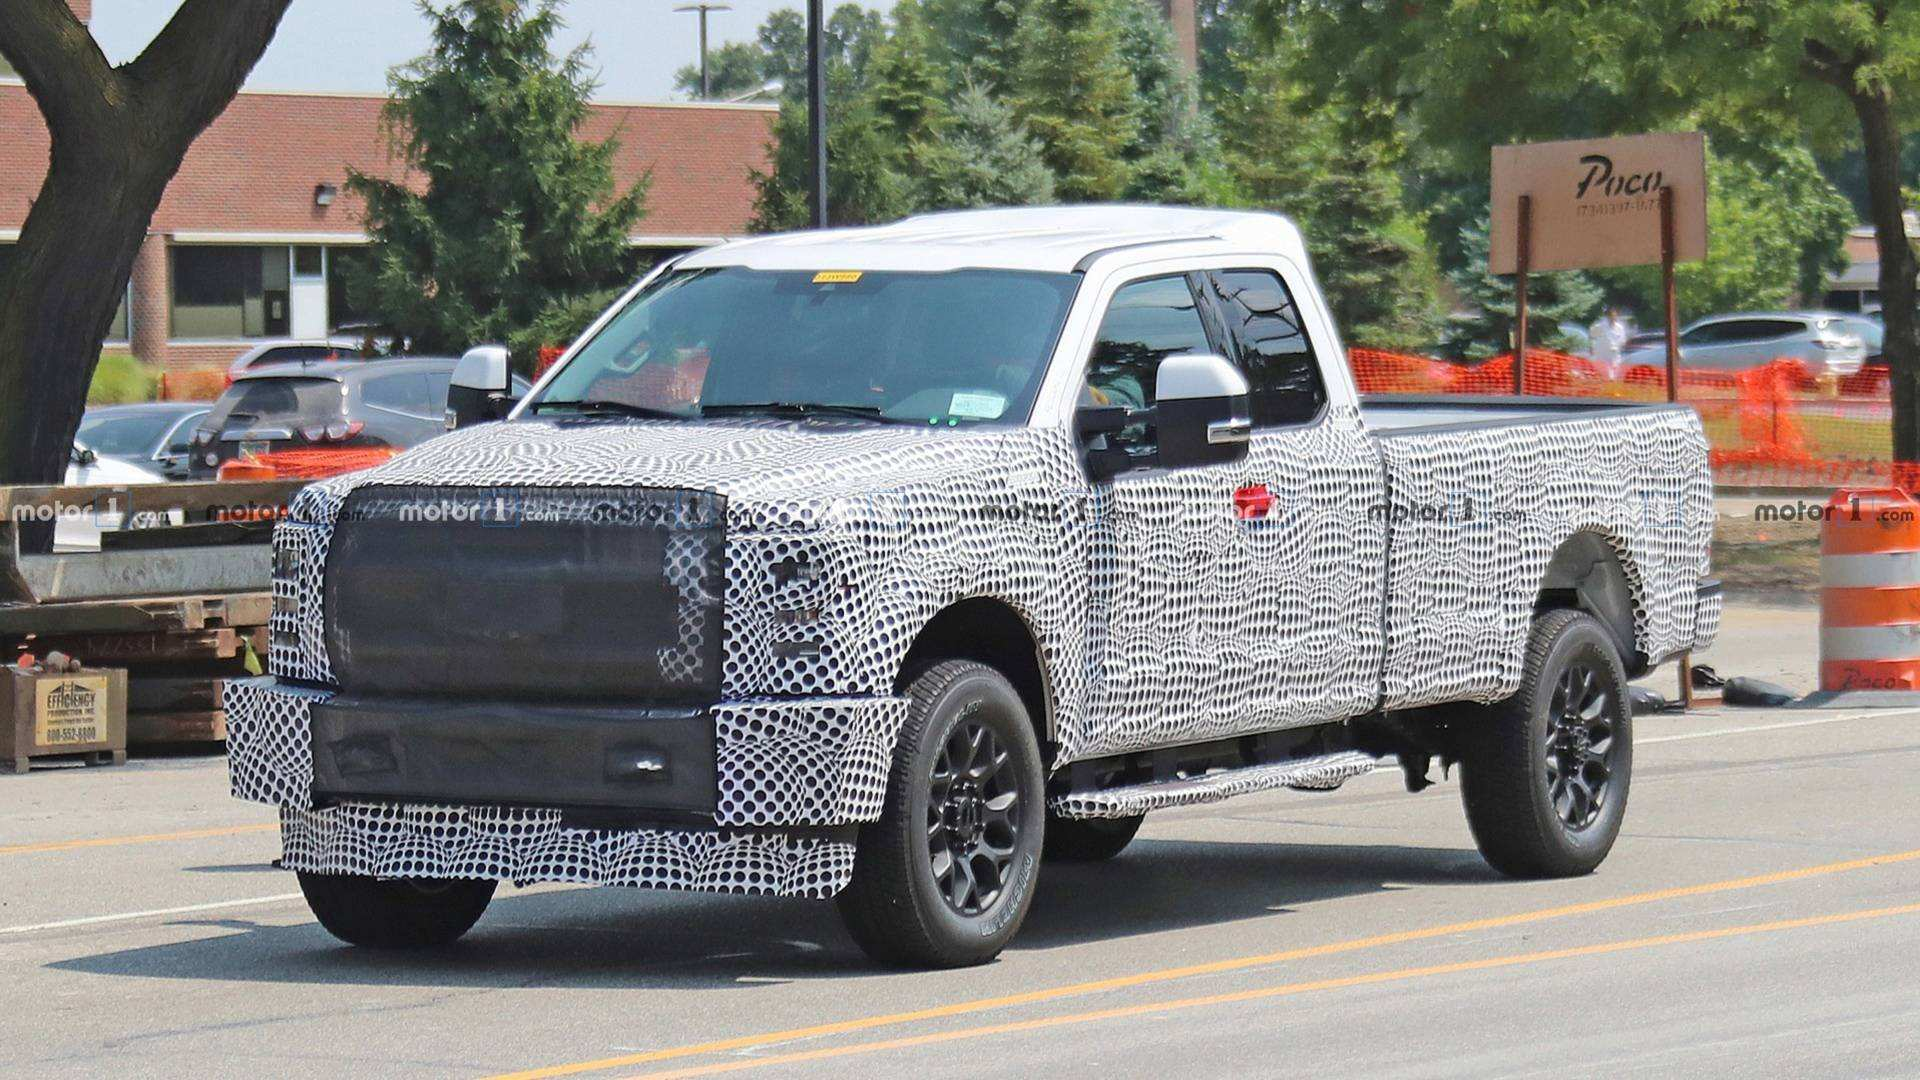 66 Great 2020 Ford F350 Super Duty Review for 2020 Ford F350 Super Duty